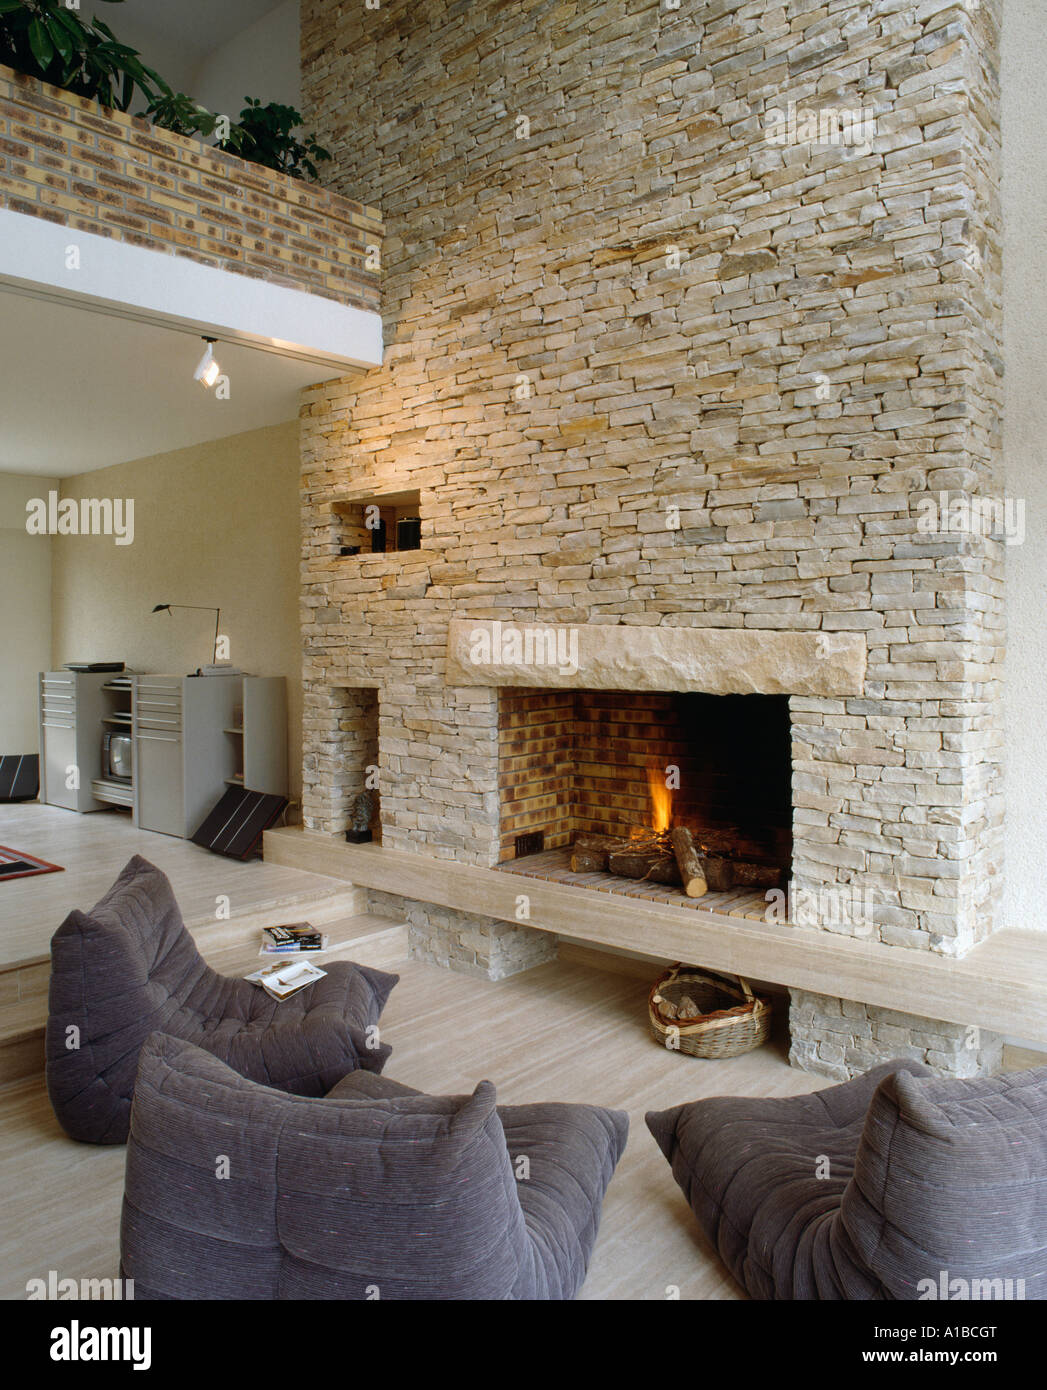 Lit Fire In Fireplace In Stone Wall Of Barn Conversion, With Modern Grey  Armchairs